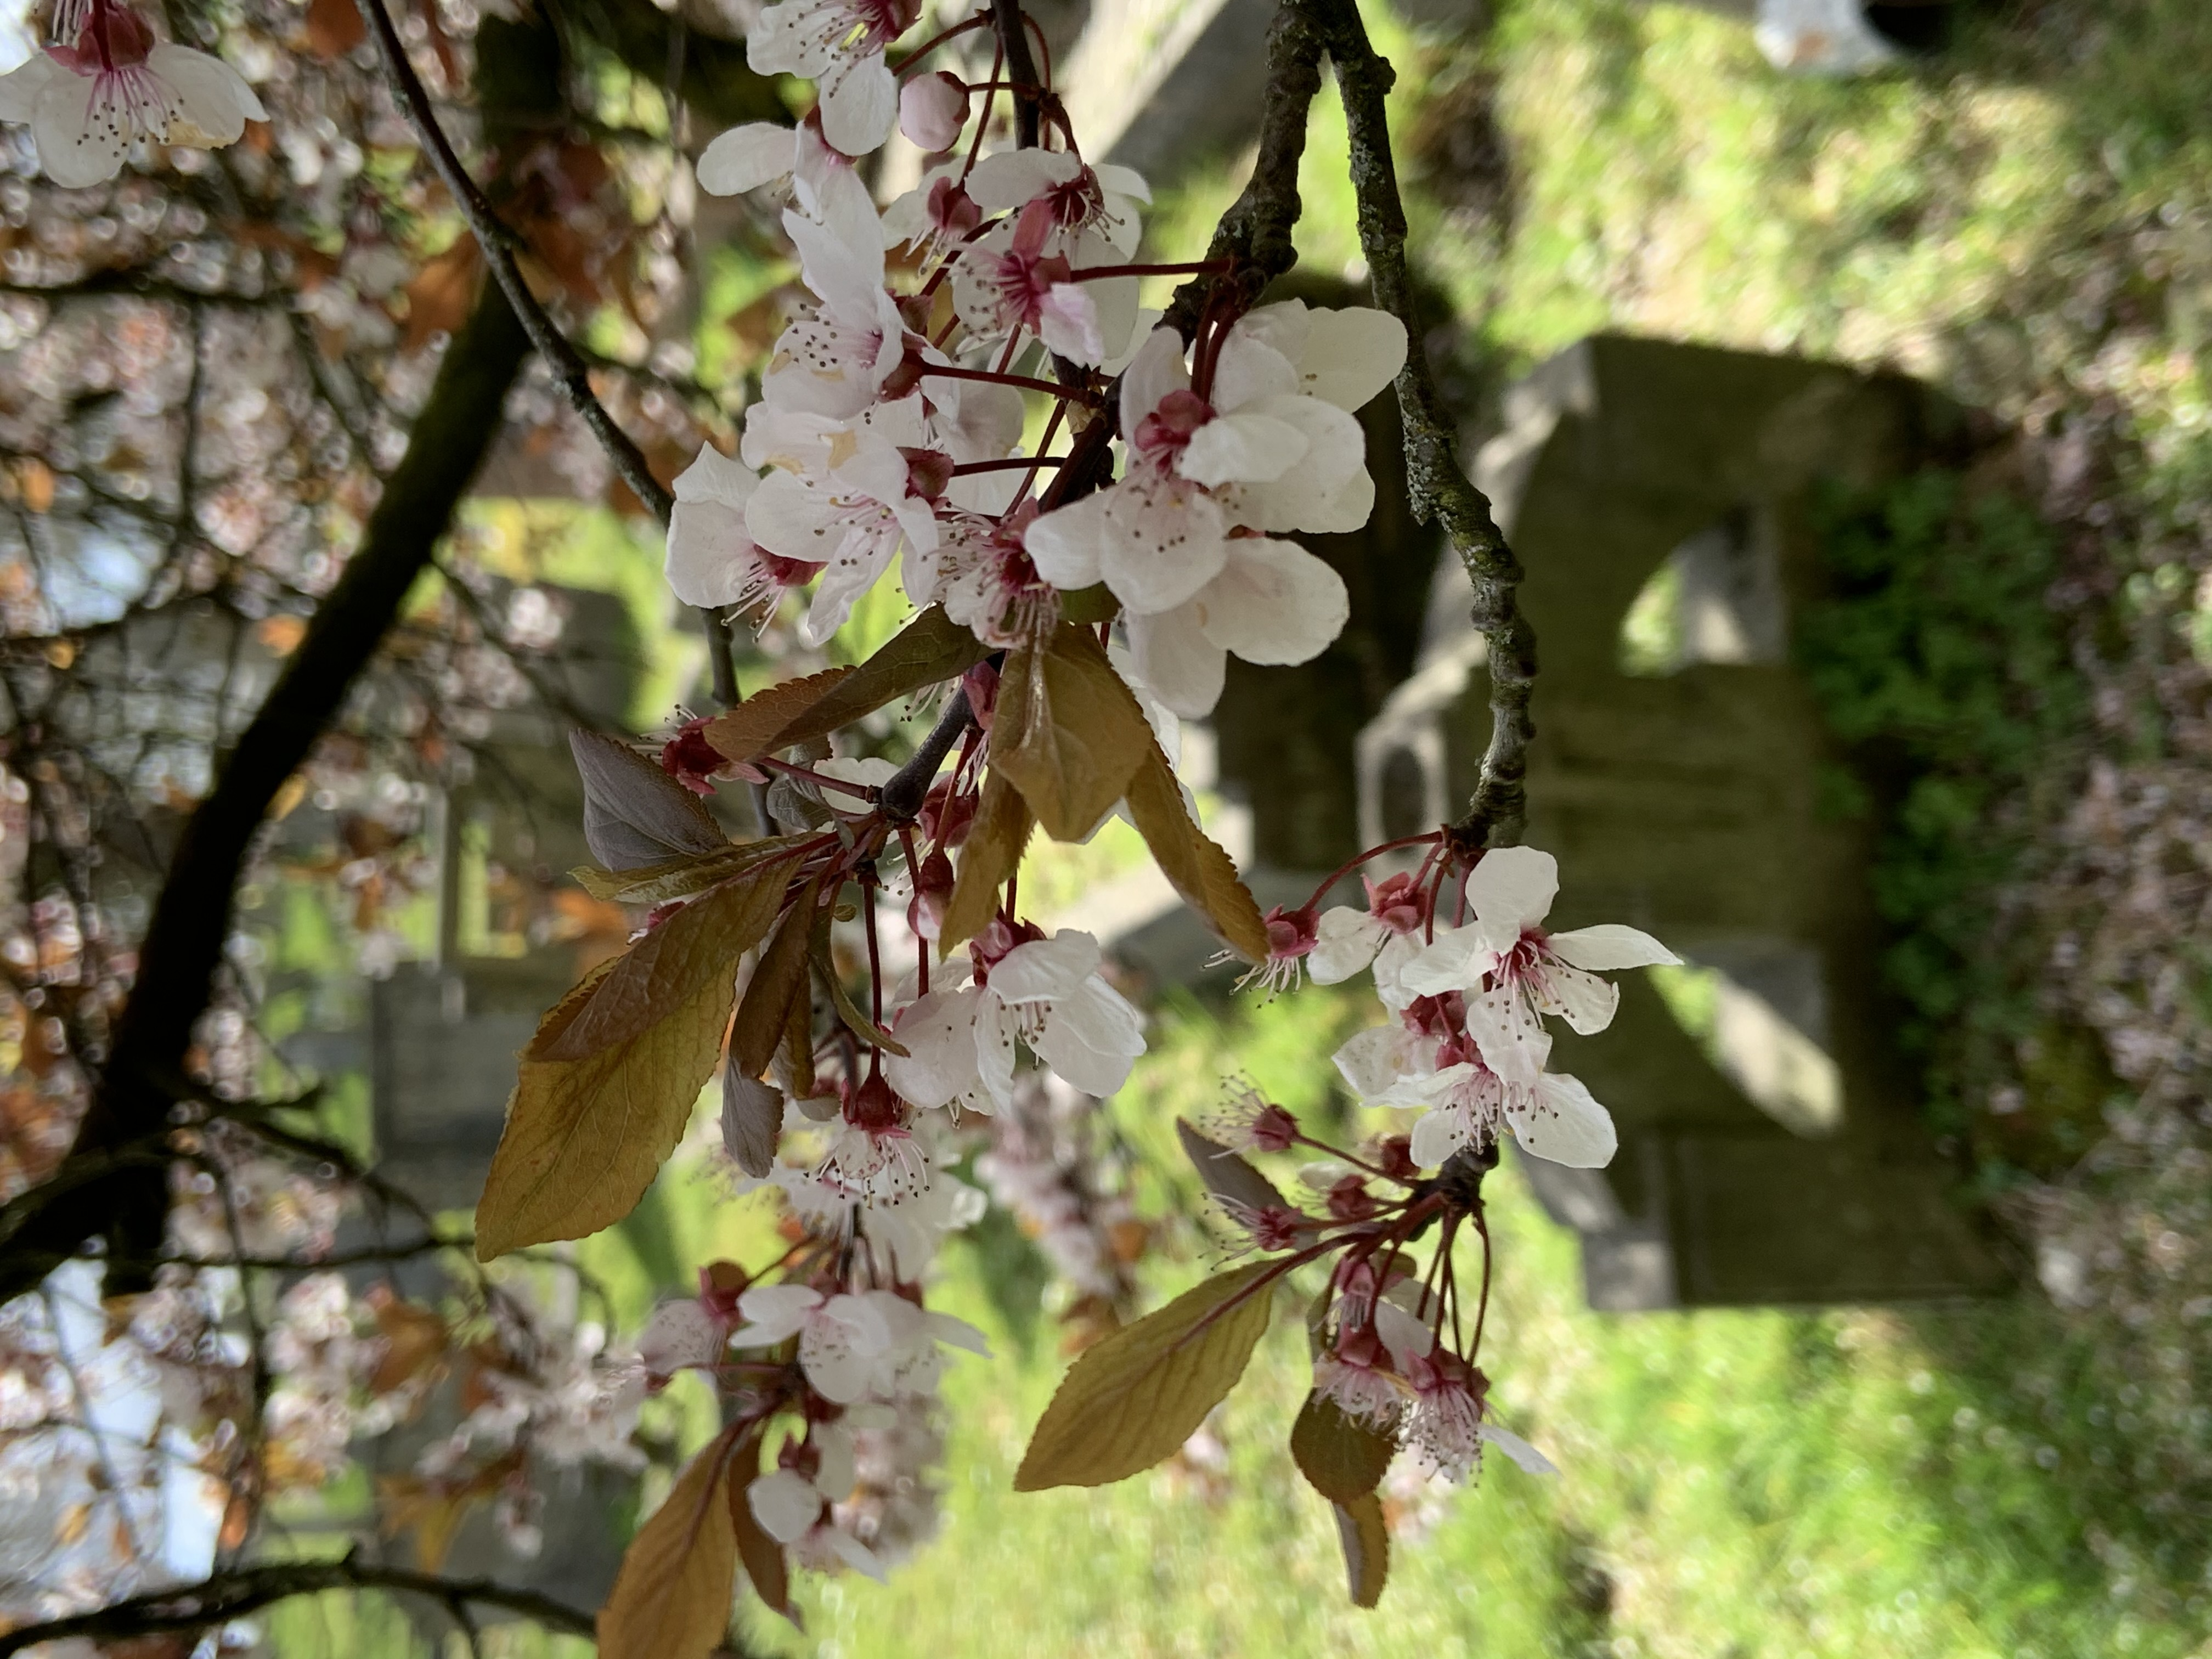 Branch with blossom